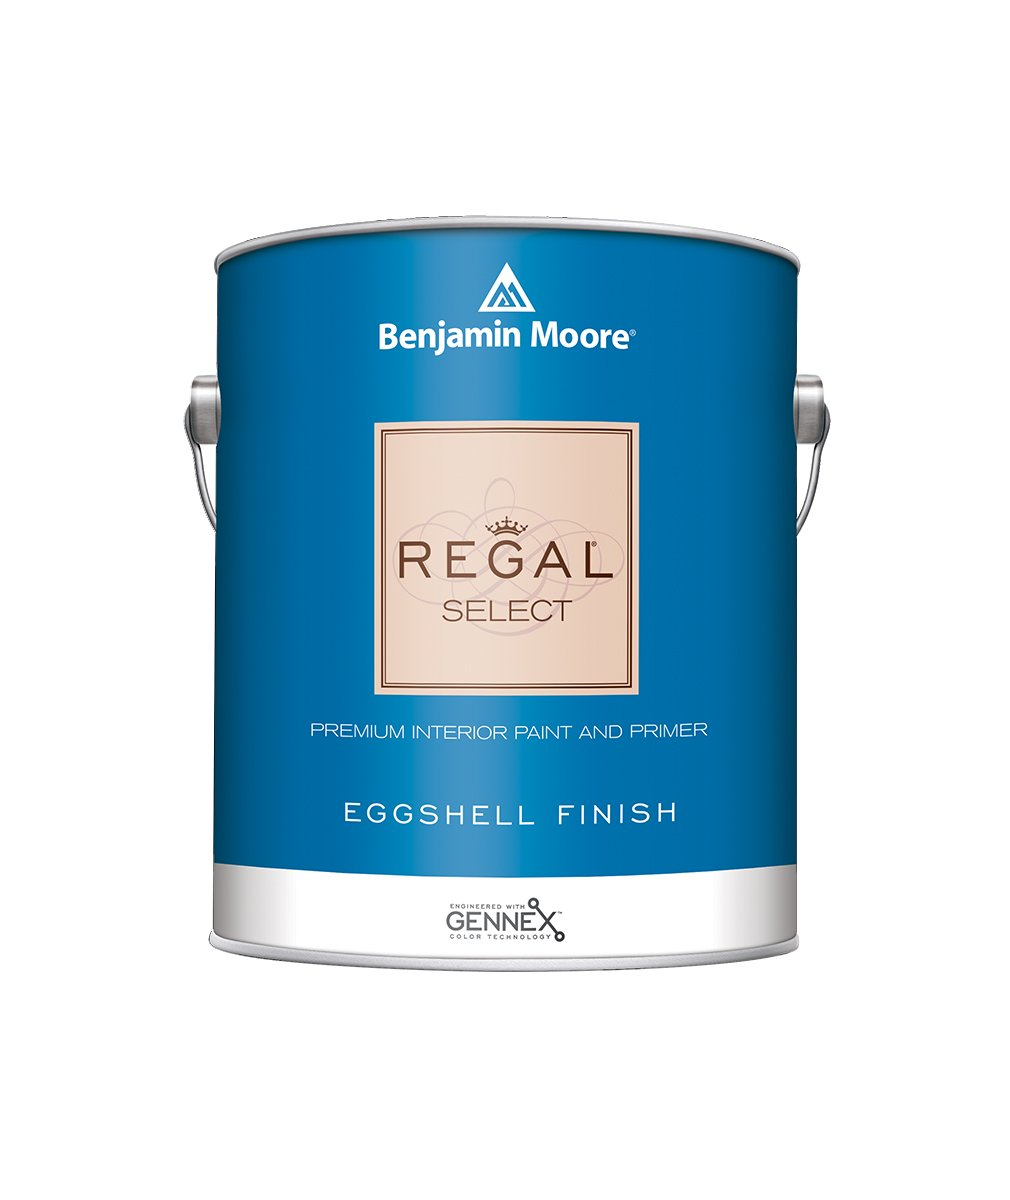 Benjamin Moore Regal Select Eggshell Paint available at Creative Paint in San Francisco, South Bay & East Bay.